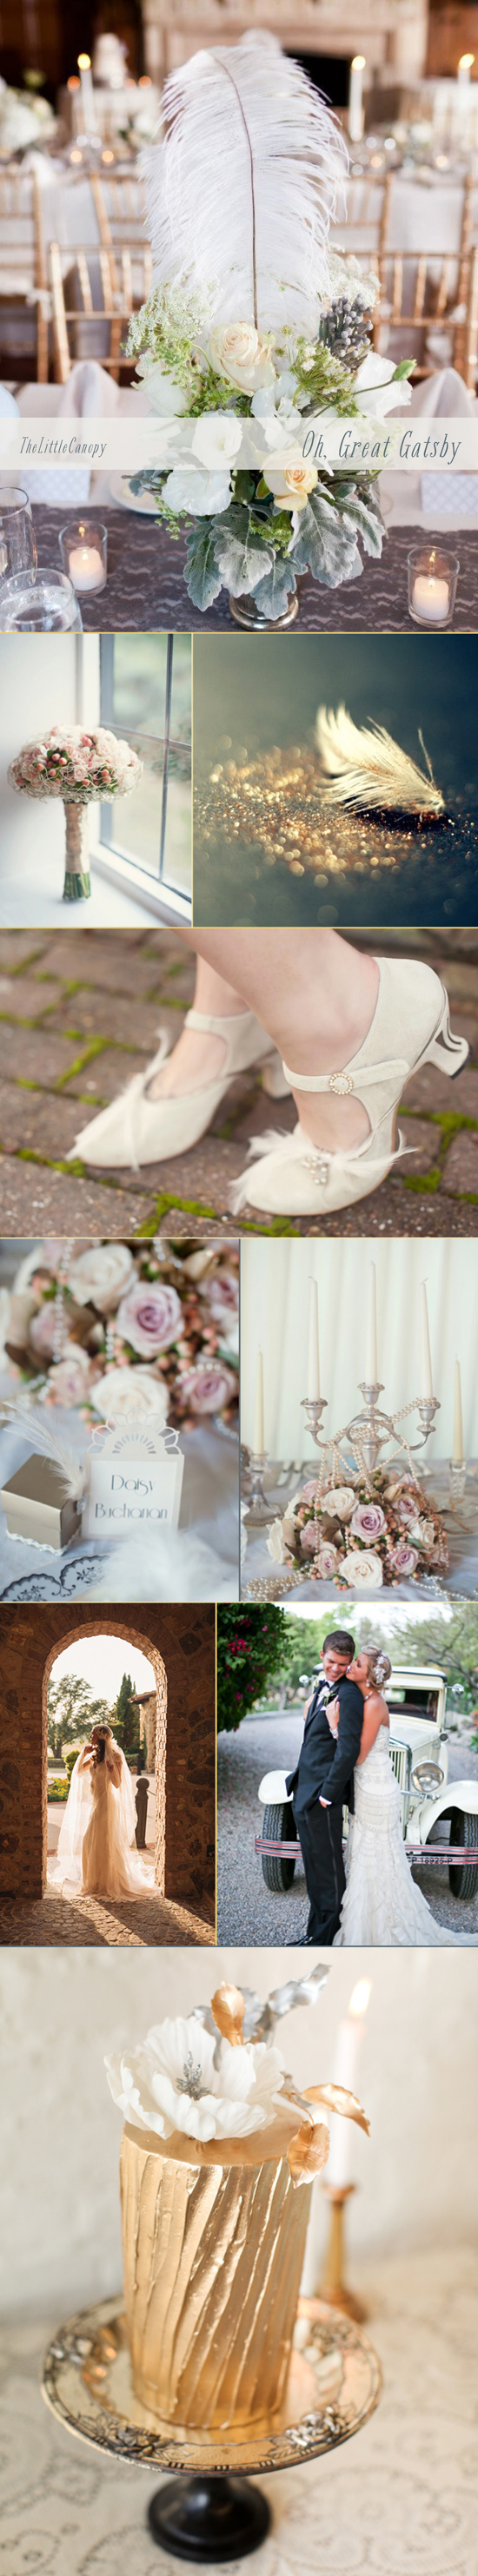 Wedding inspiration board for the great old gatsby theme in all its romantic glory